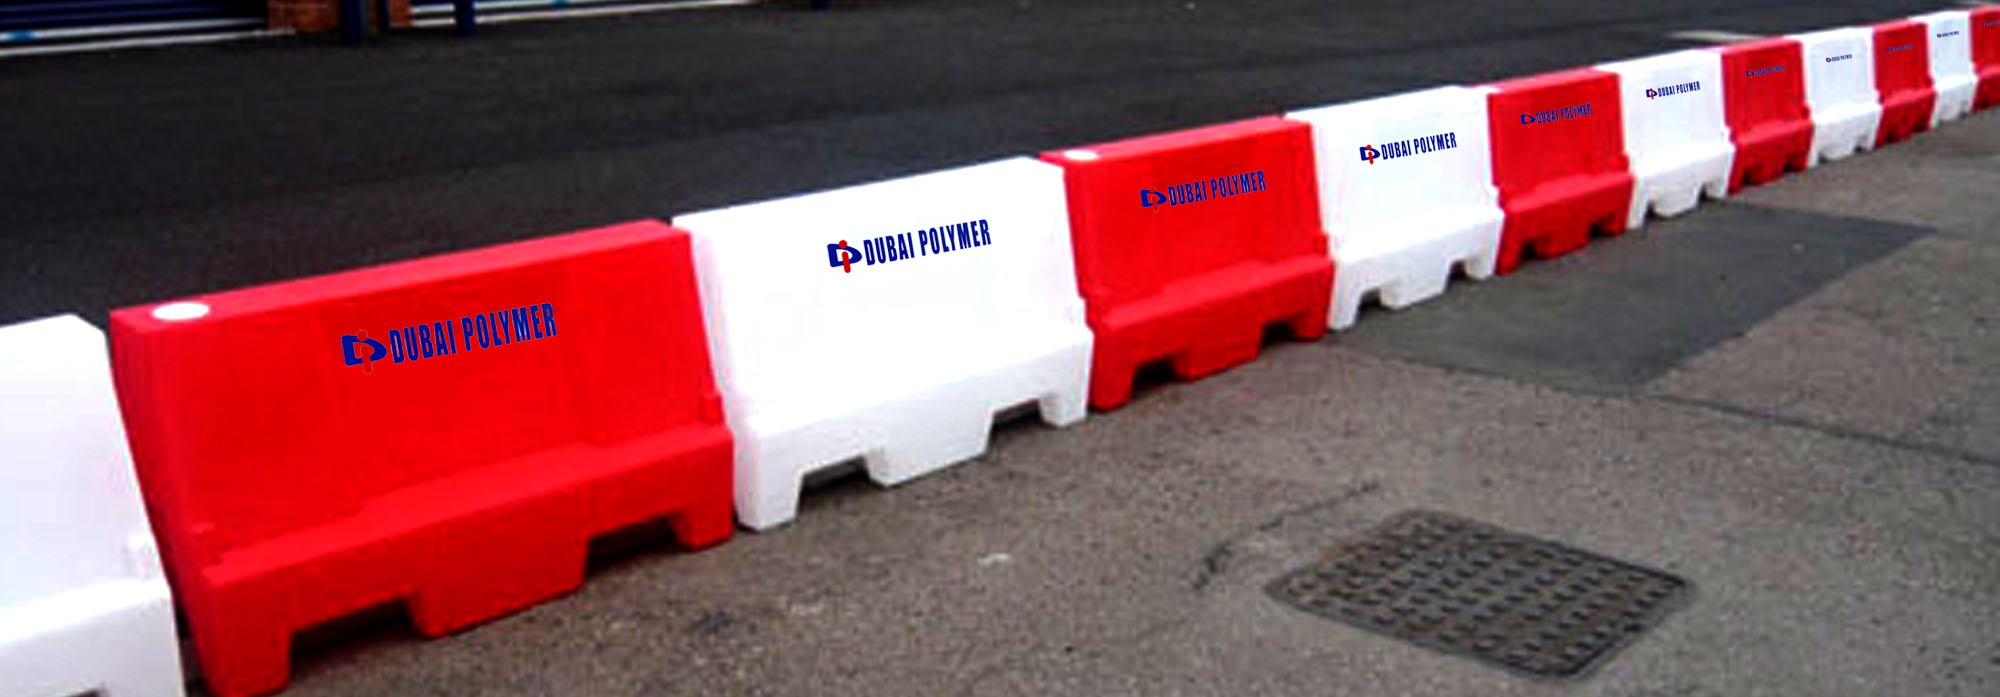 Polyethylene water tank products like PVC Pipes & Road Barriers in